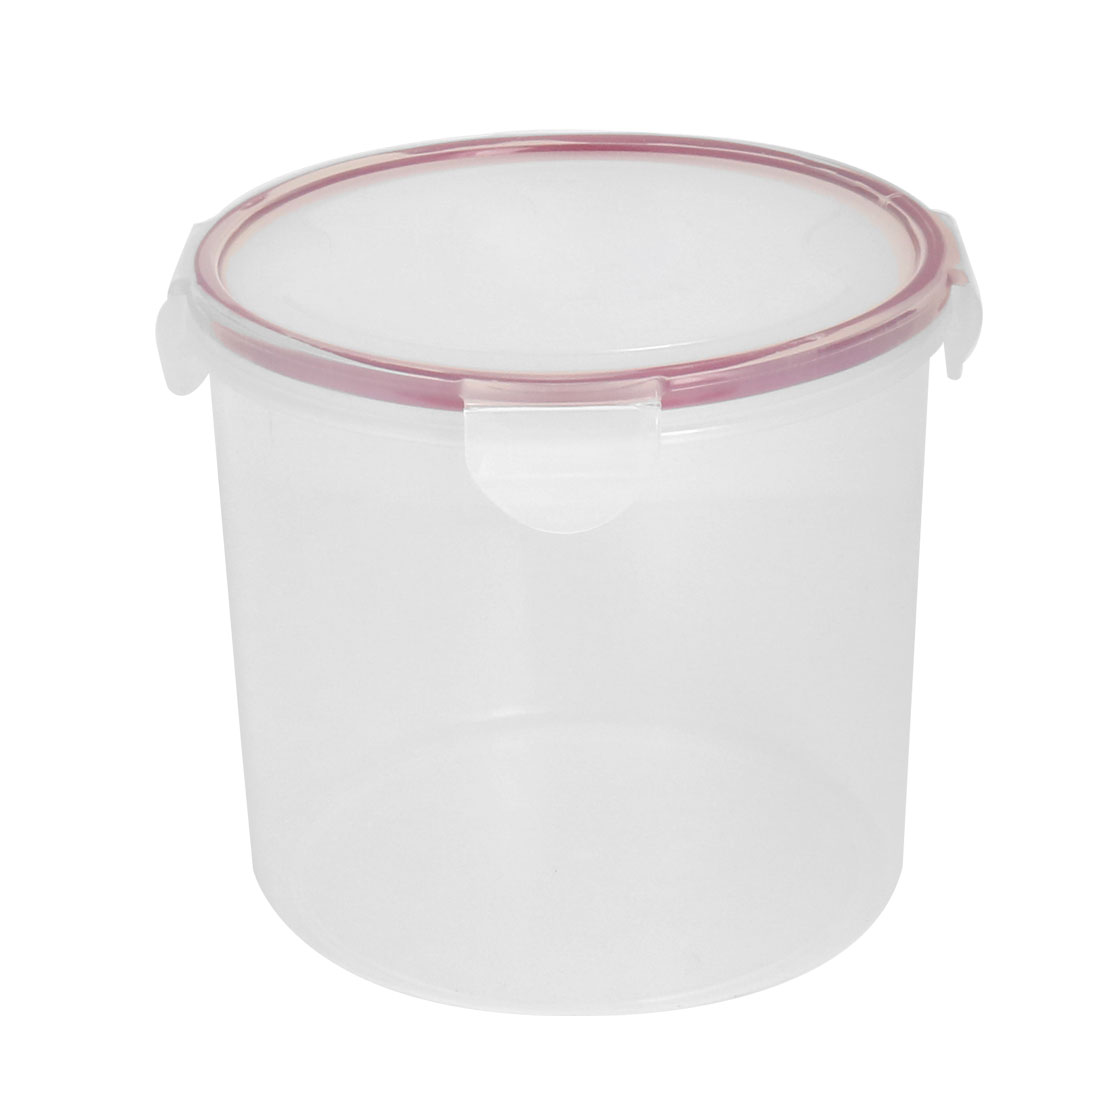 Home Kitchenware PP Cylinder Sealed Food Vegetable Fruit Storage Container 2L